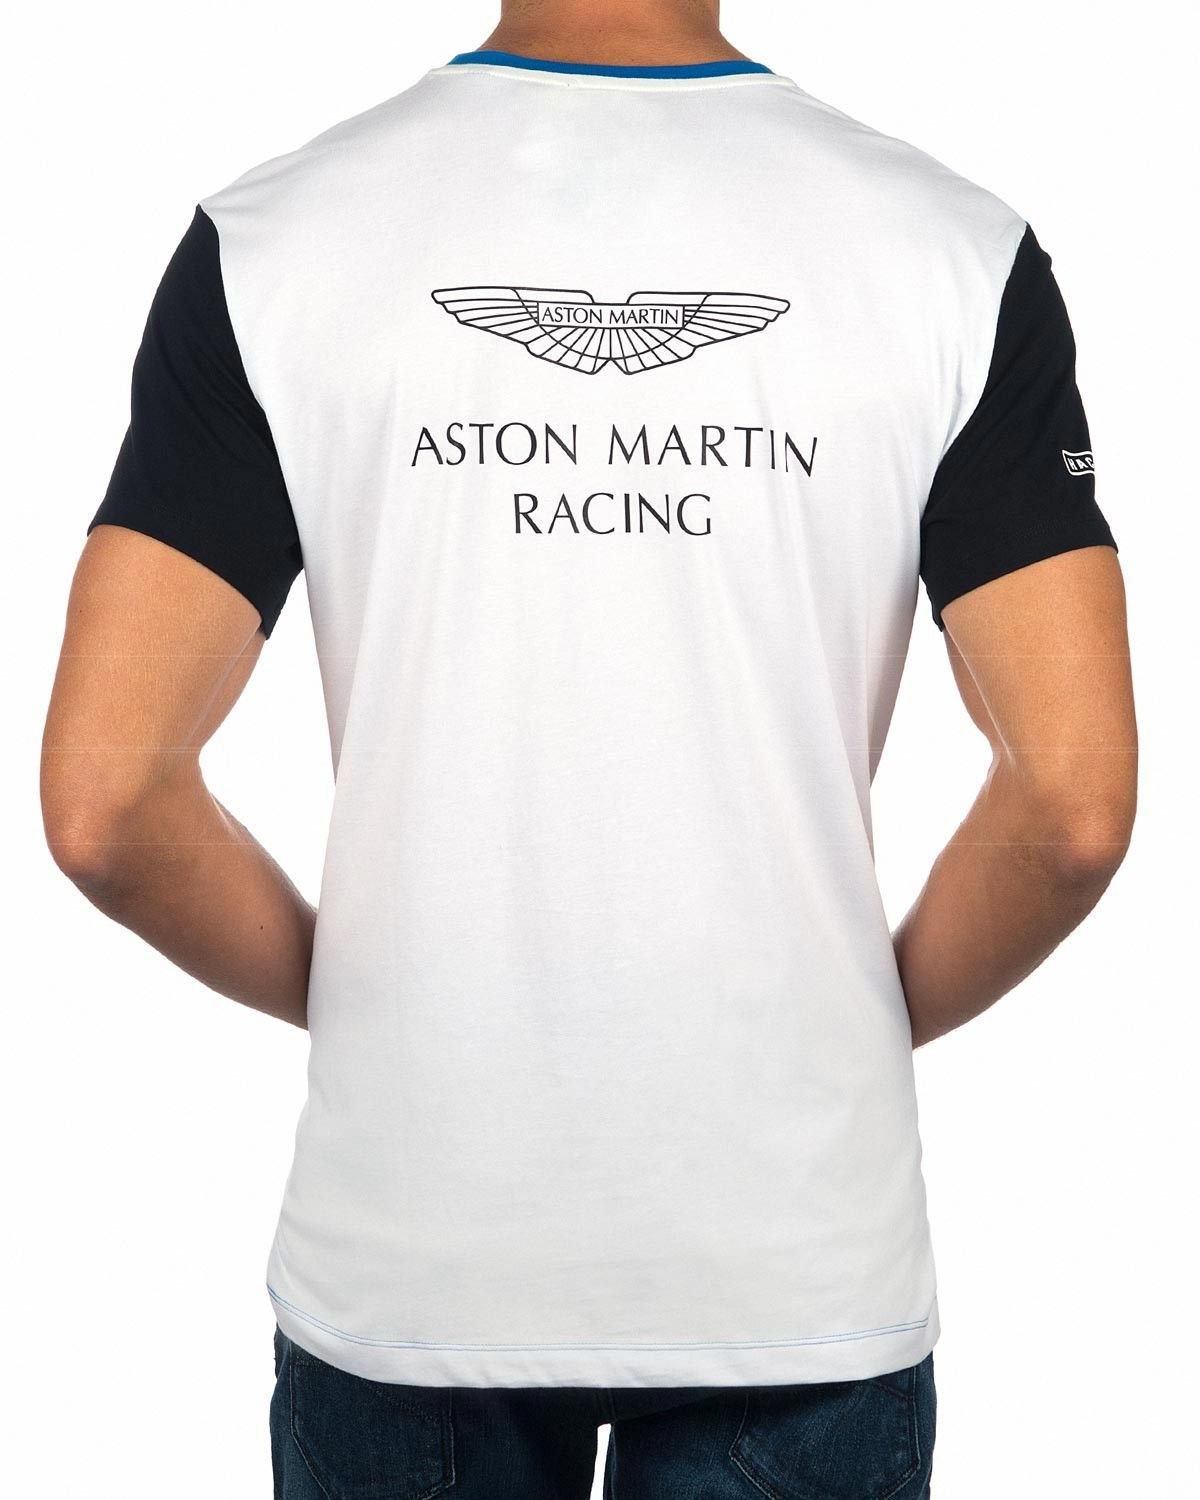 hackett aston martin t shirt - multi | blue & white | menswear